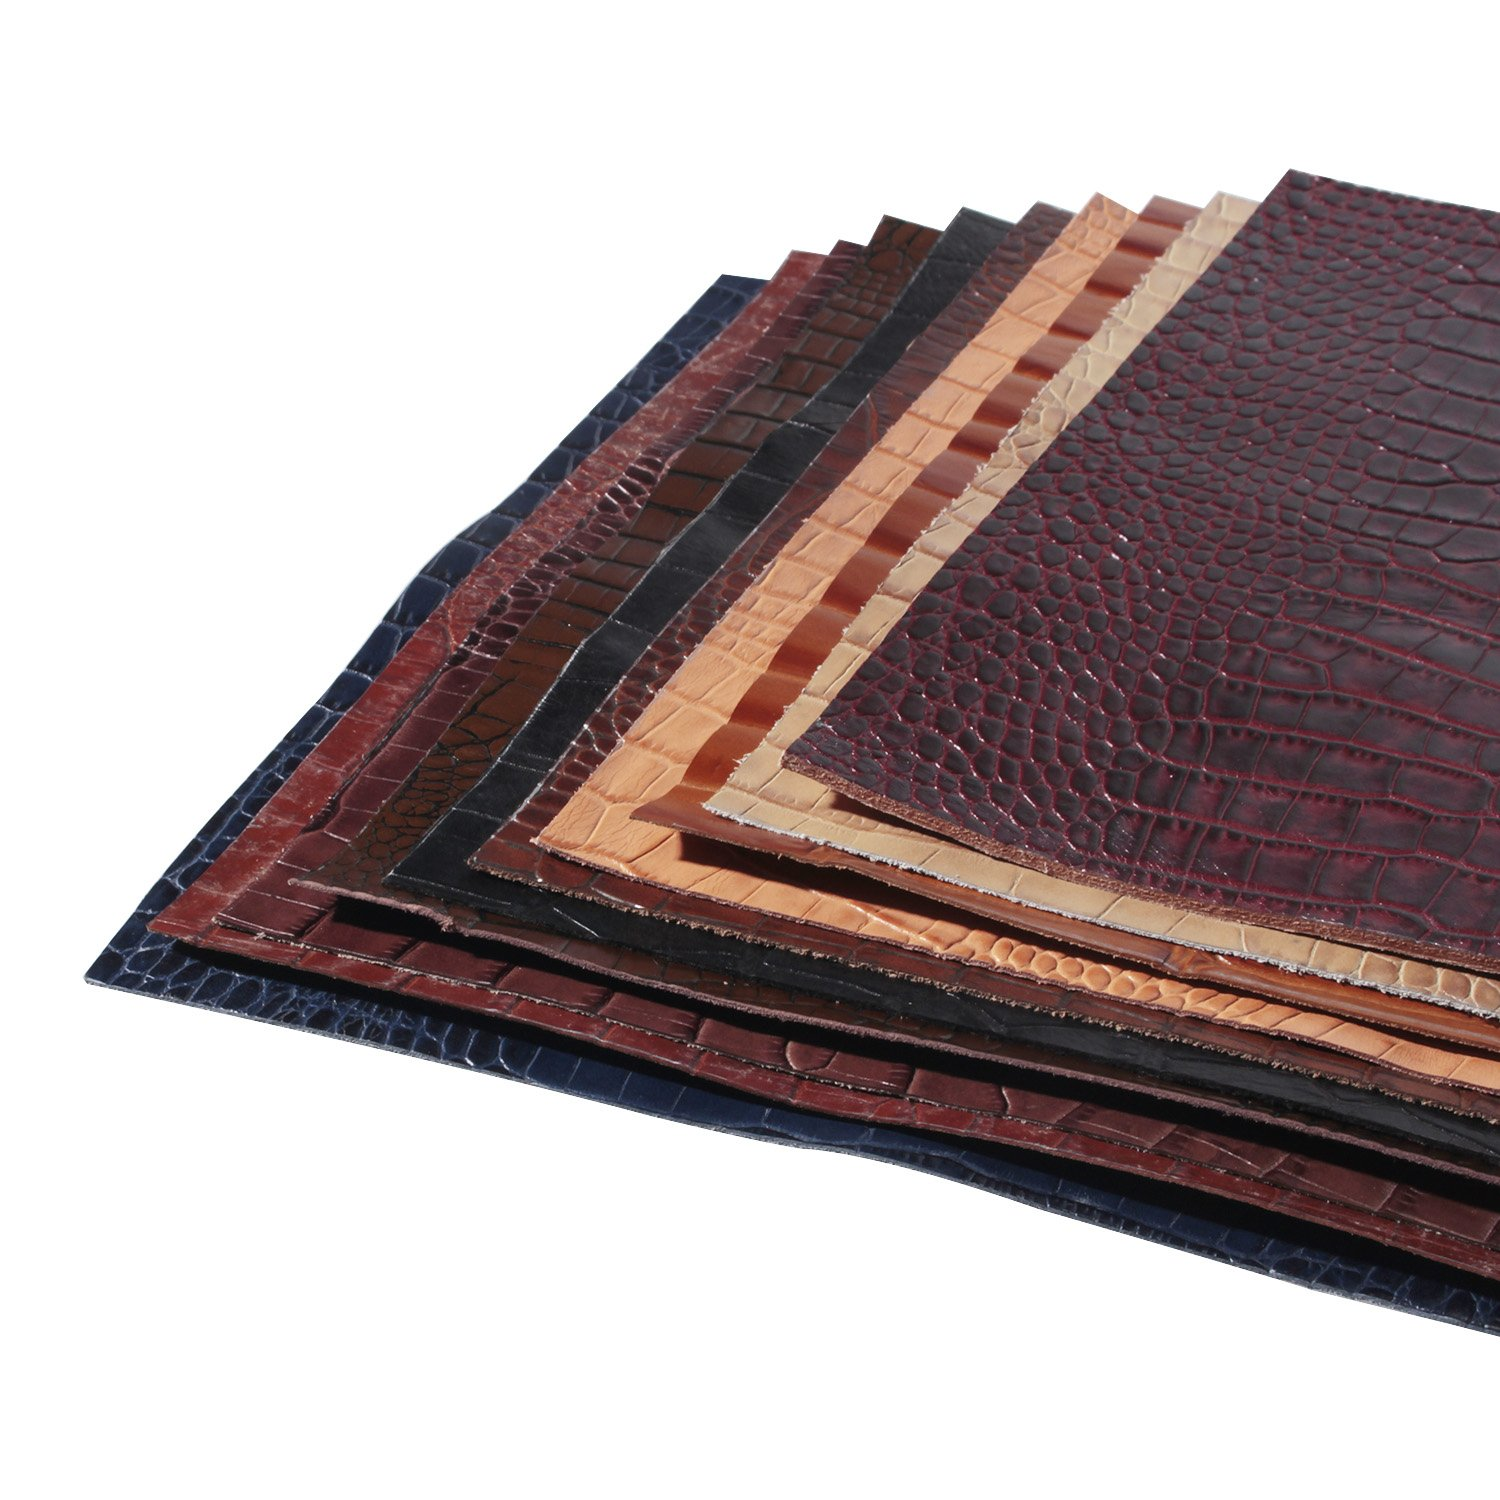 crocodile pattern print calf leather for wallet craft, 12''X12'' 12''X12'' color mogu